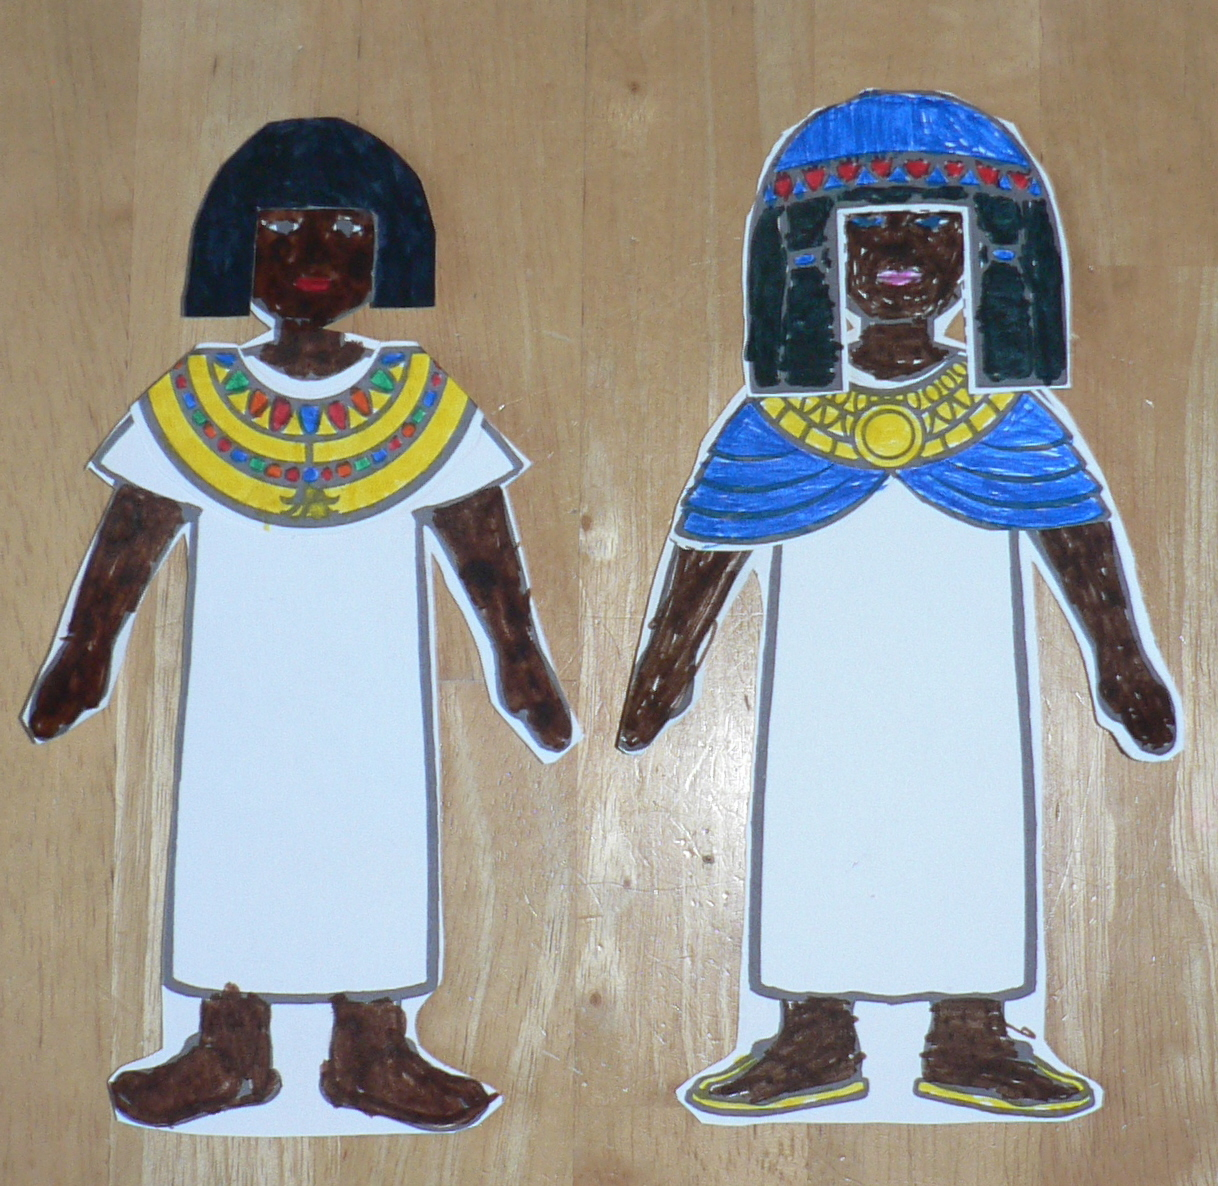 Ancient Egyptian Clothing For Kids We had an ancient egyptian